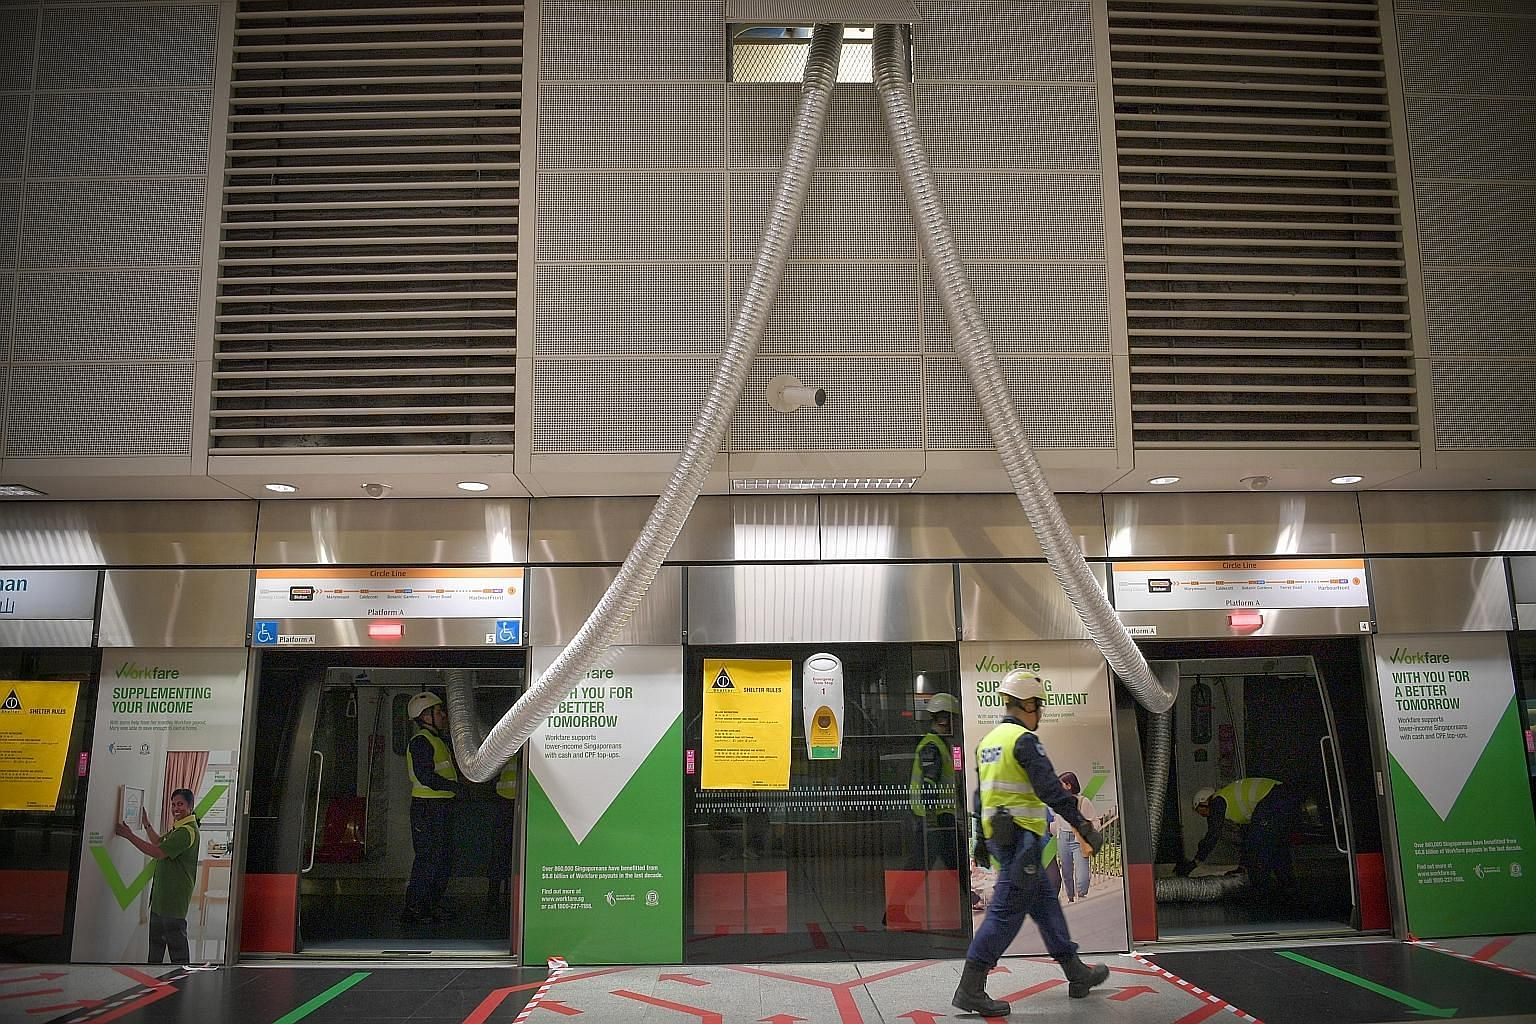 MRT shelters can accommodate between 3,000 and 19,000 people depending on the size. These shelters are designed to ensure a safe and comfortable environment.